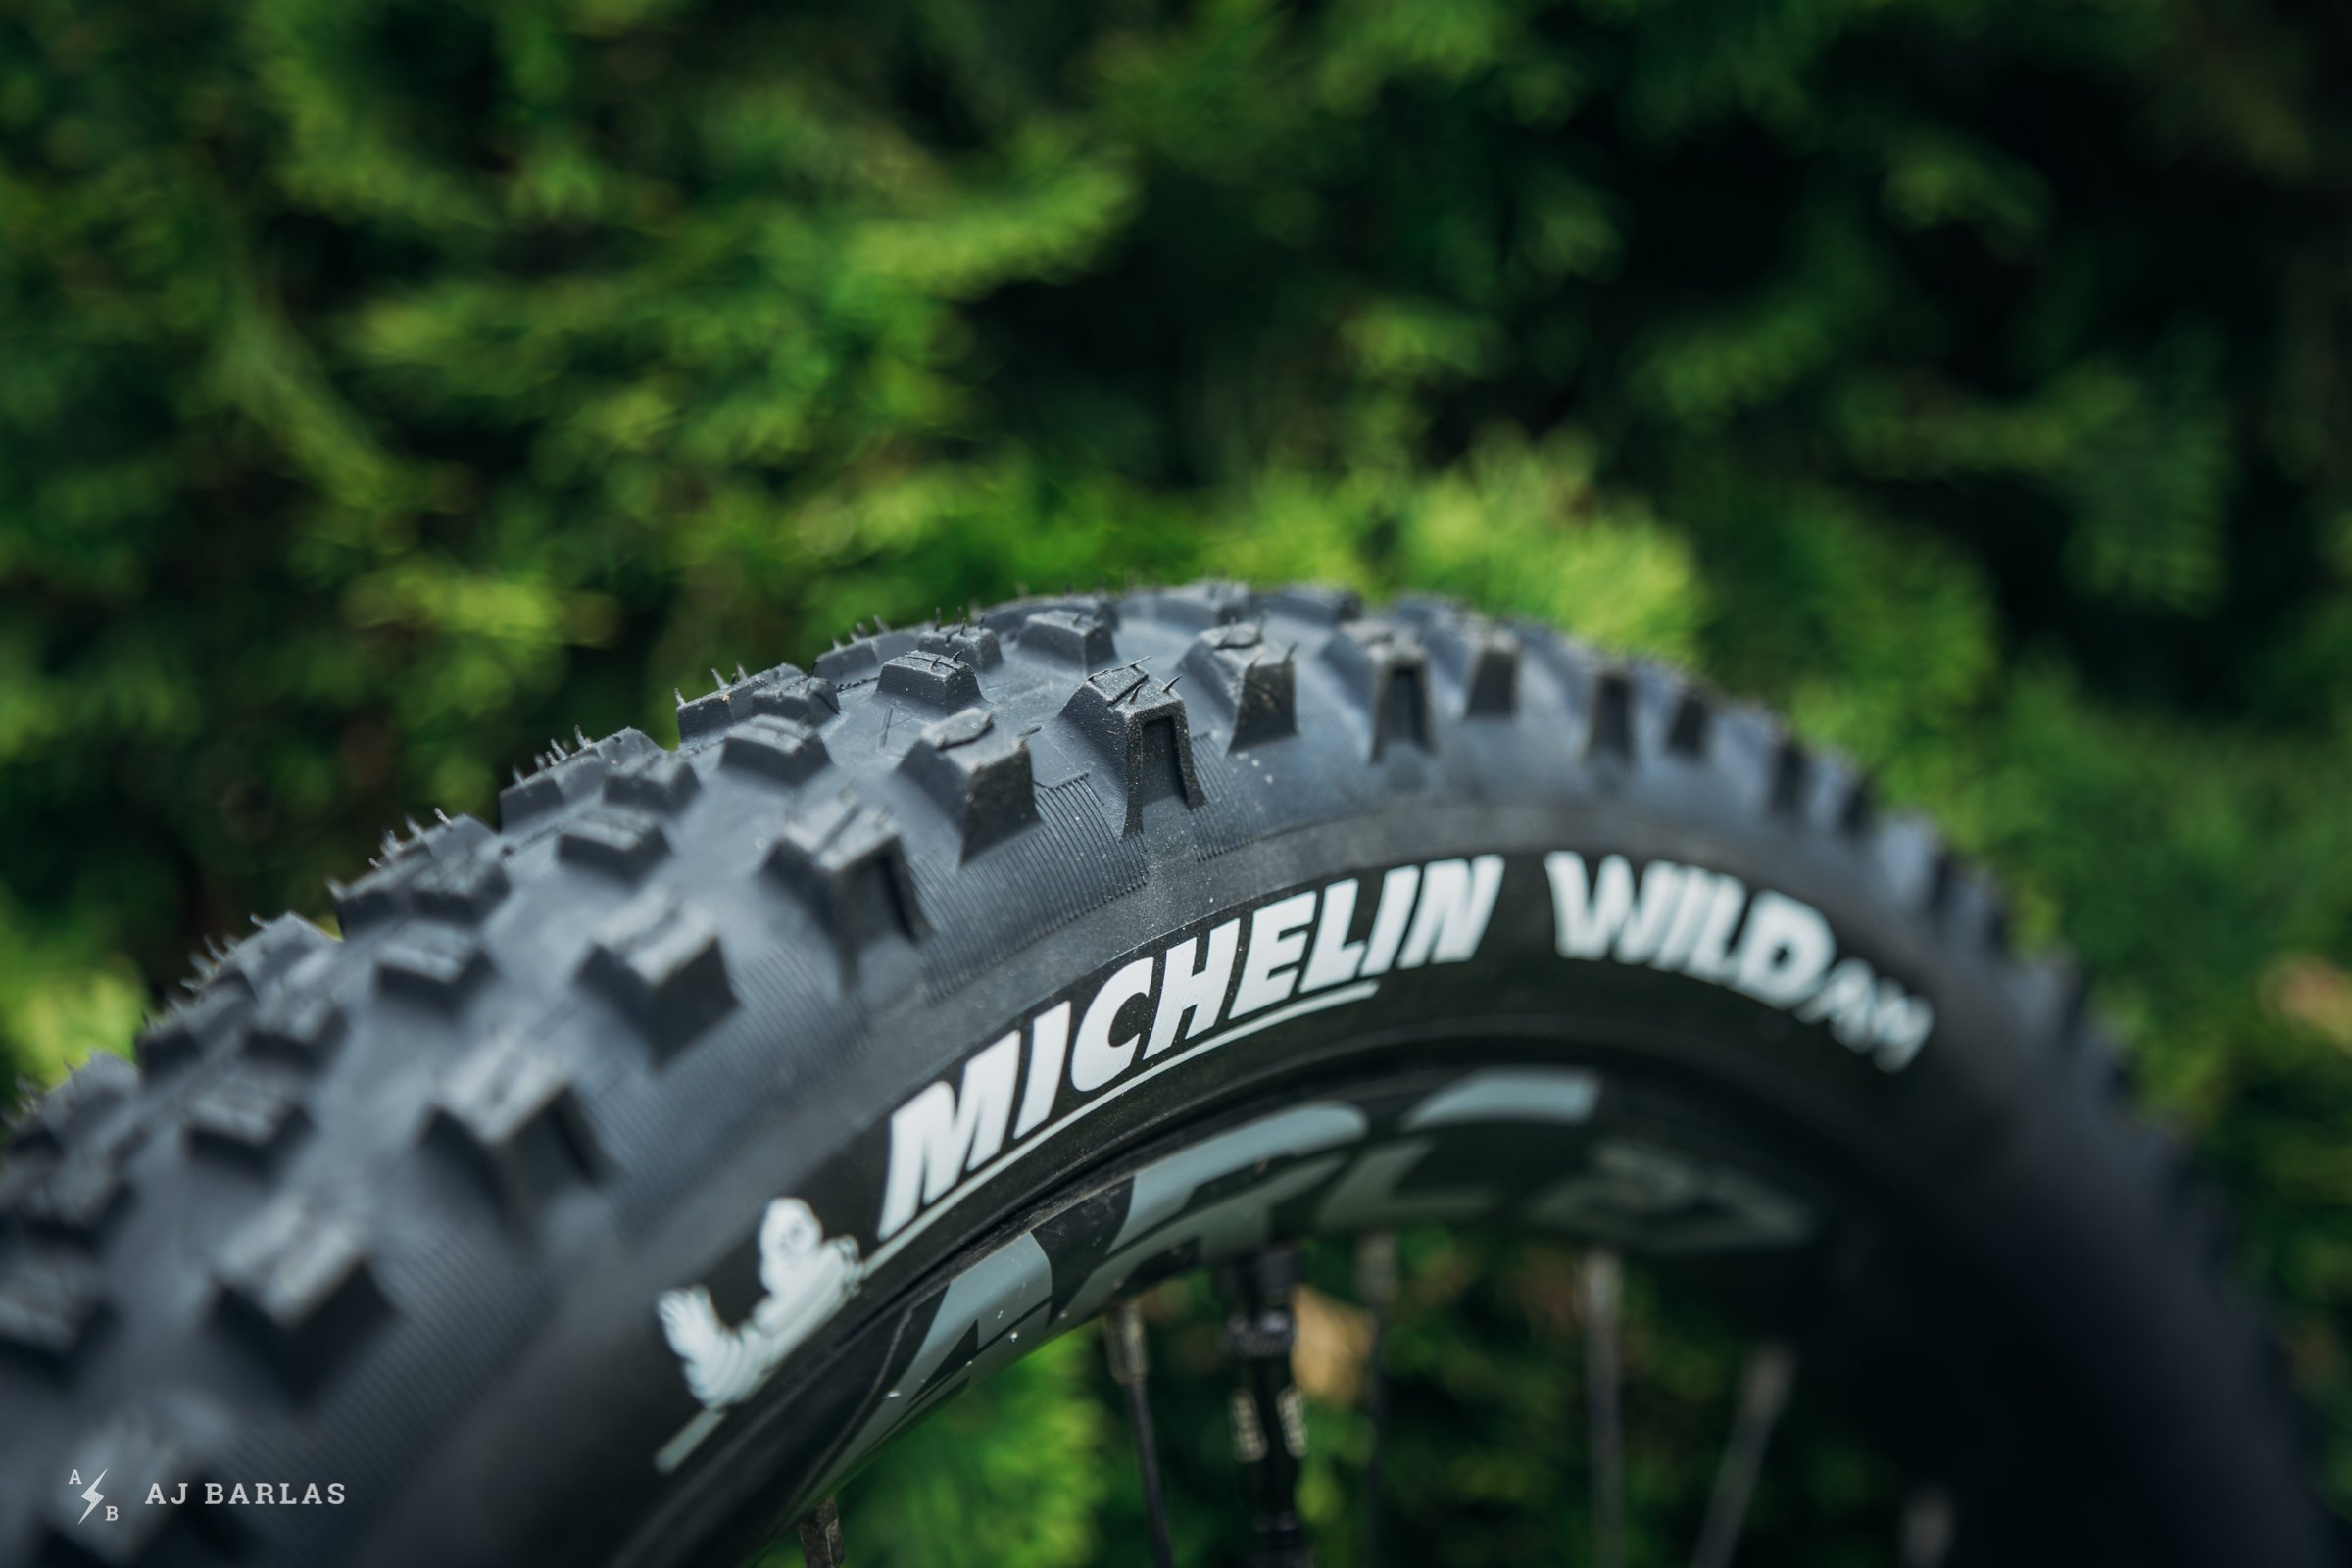 michelin-wild-am-tire-210518-ajbarlas-7132.jpg